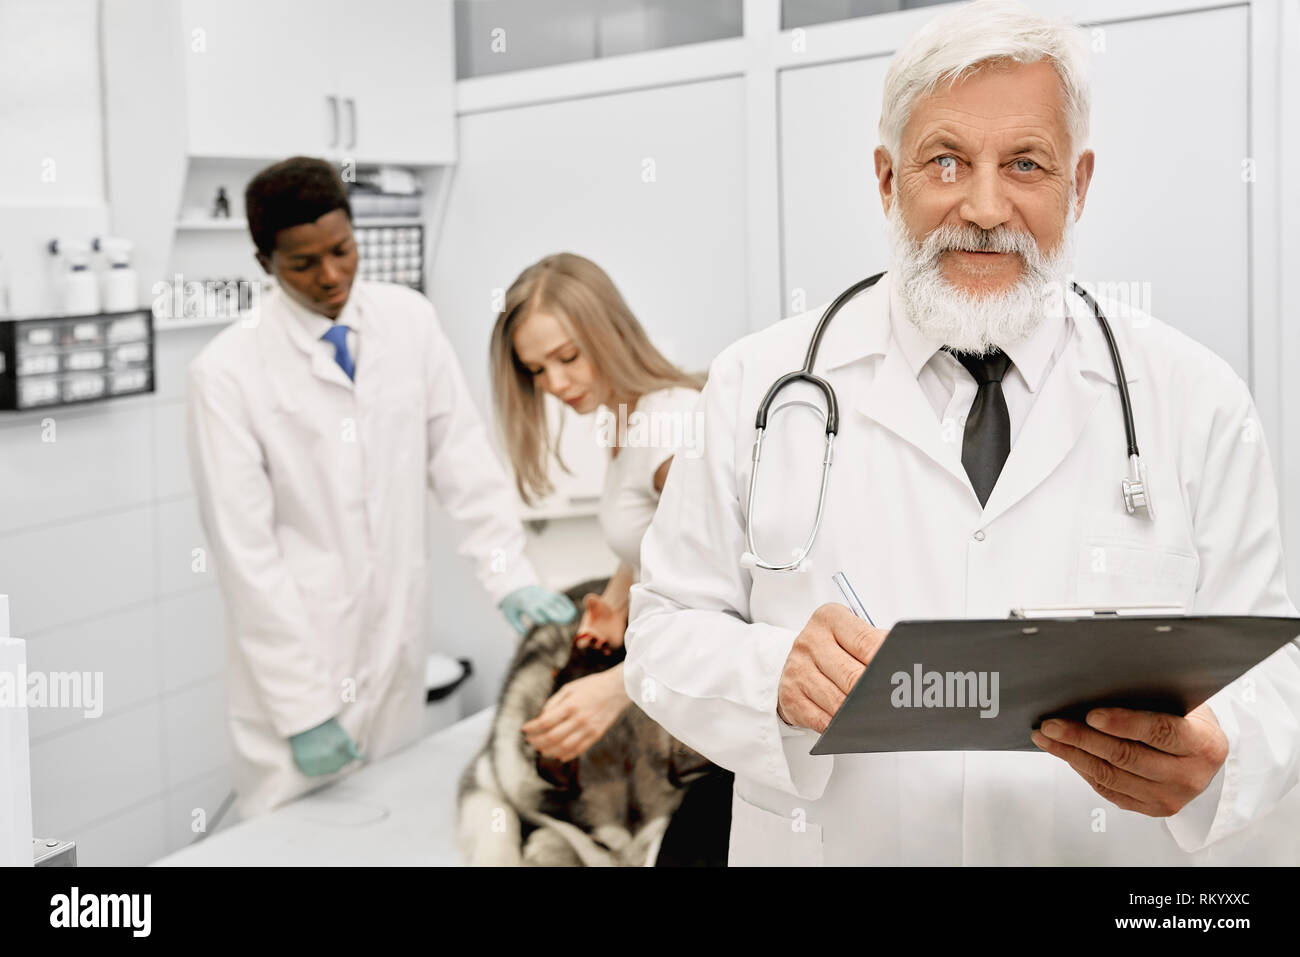 Confident elderly veterinarian with stethoscope on neck looking at camera, holding folder and posing. Owner of malamute dog and african assistant stroking big animal. - Stock Image